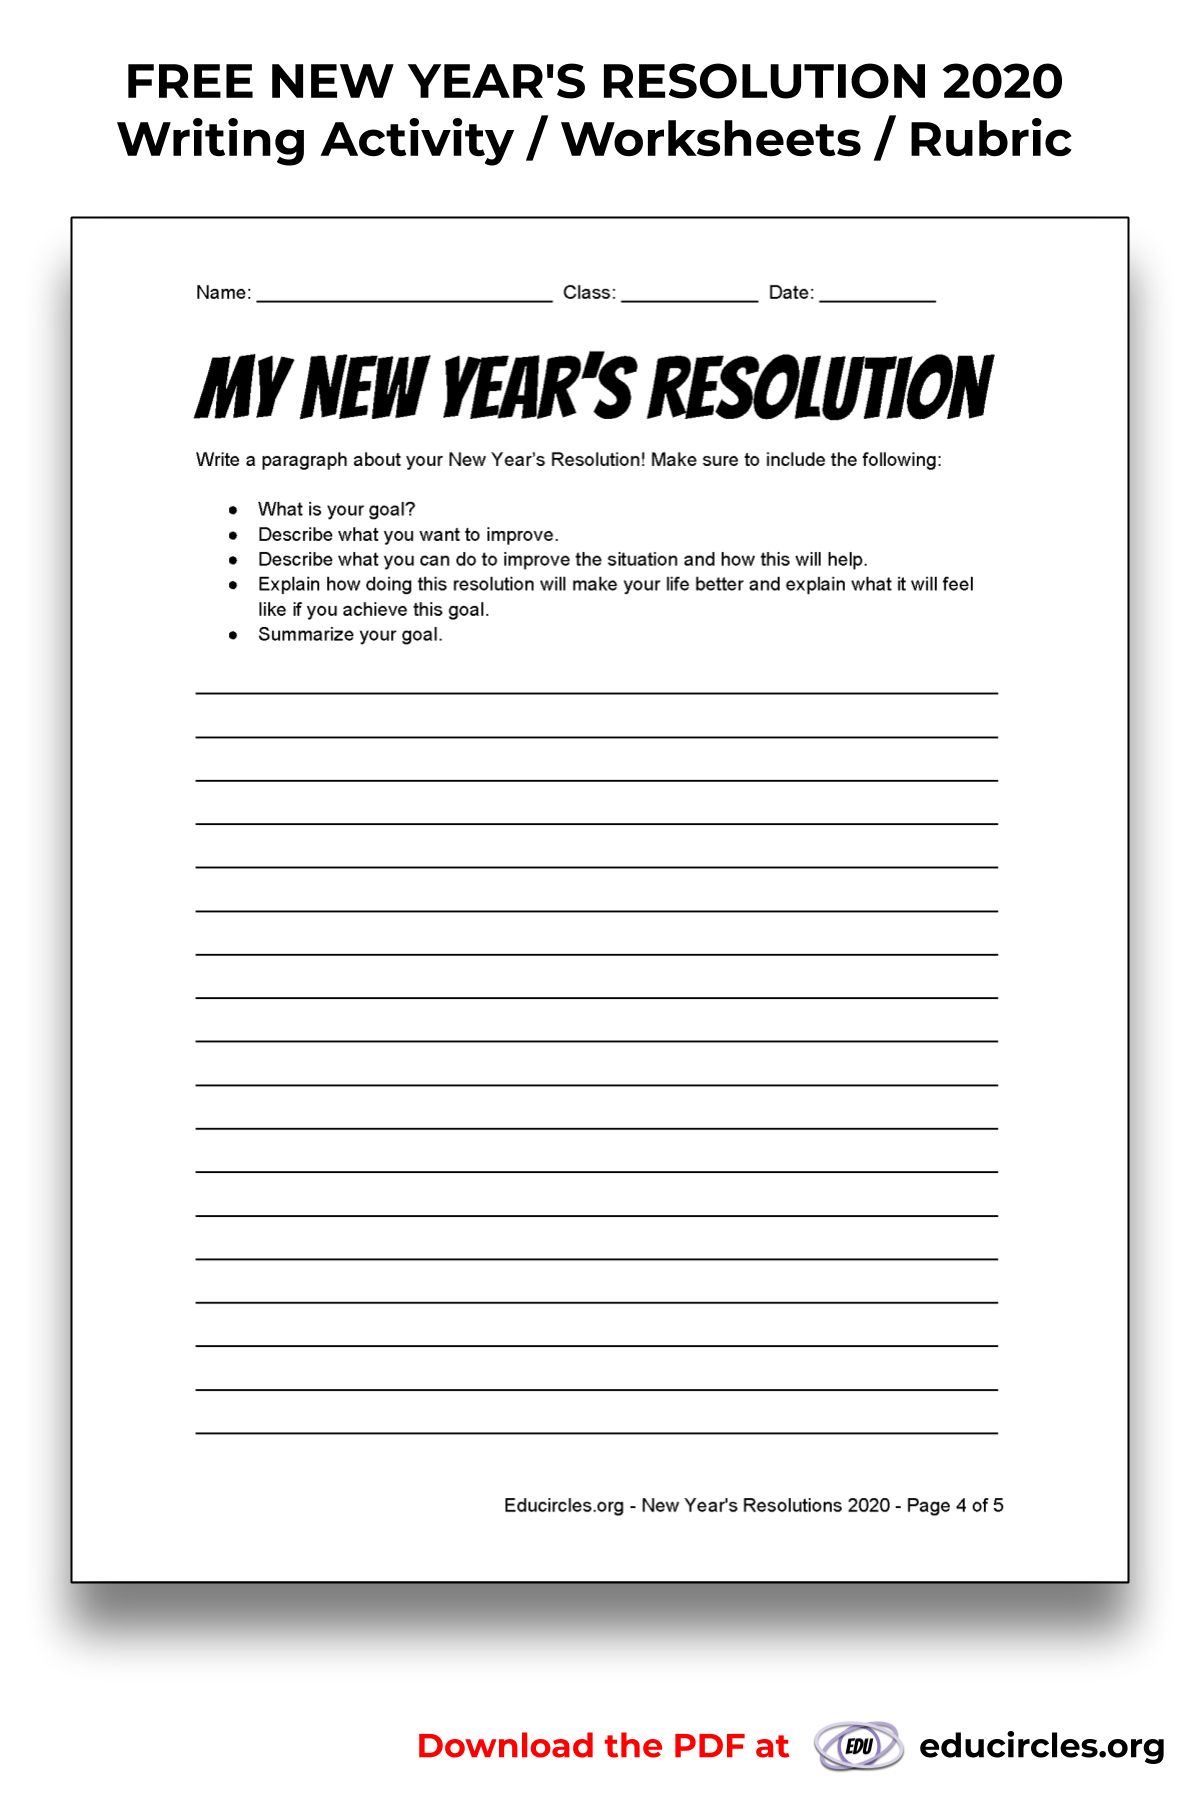 FREE NEW YEAR'S RESOLUTION 2020 Writing Activity / Worksheet